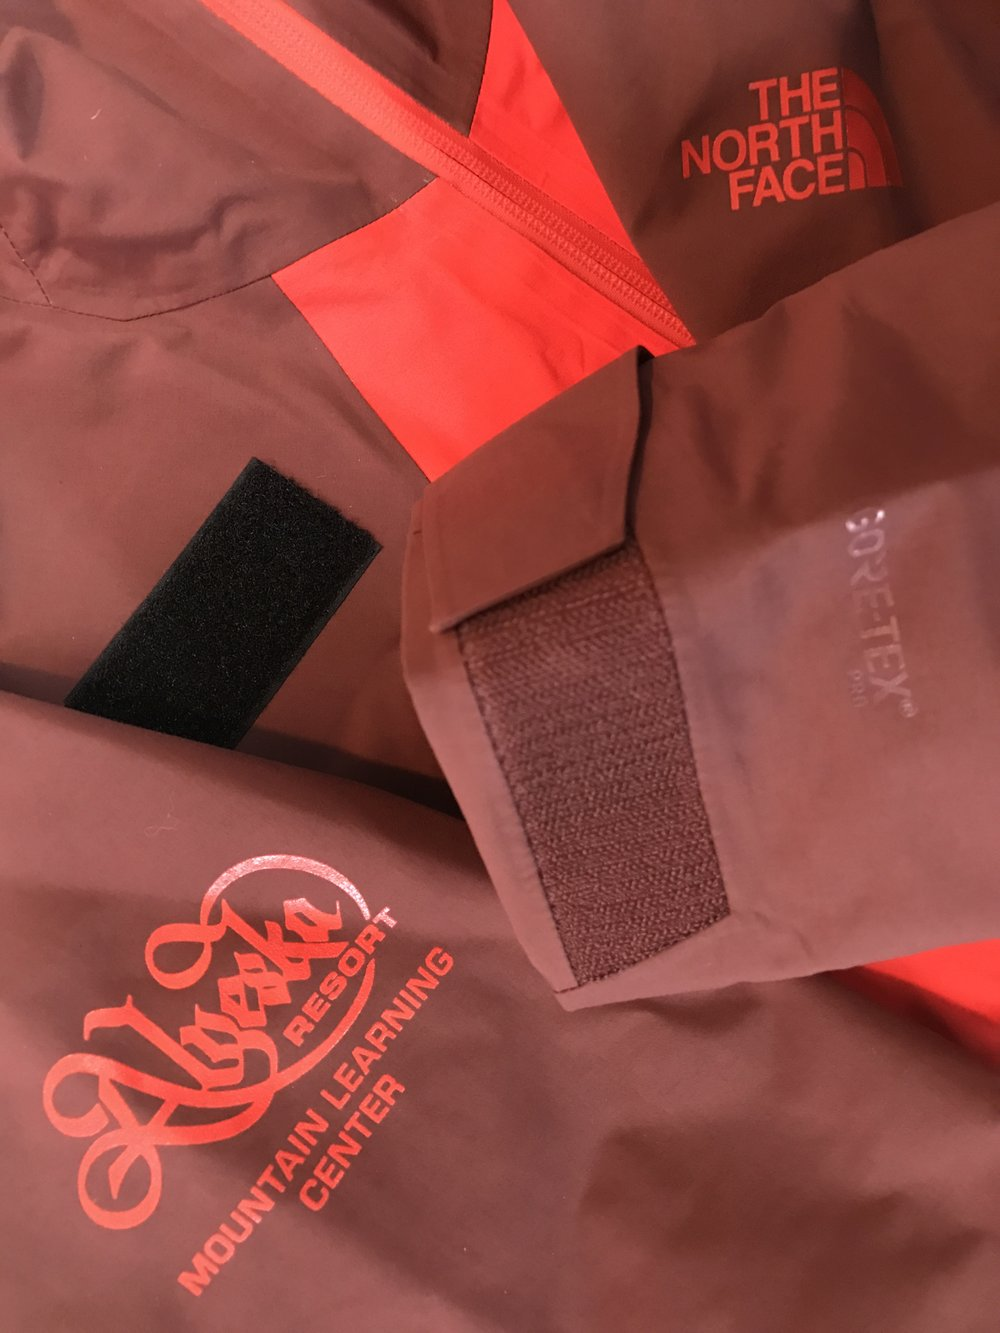 Velcro® Loop Name tags on Gore-Tex® Jackets